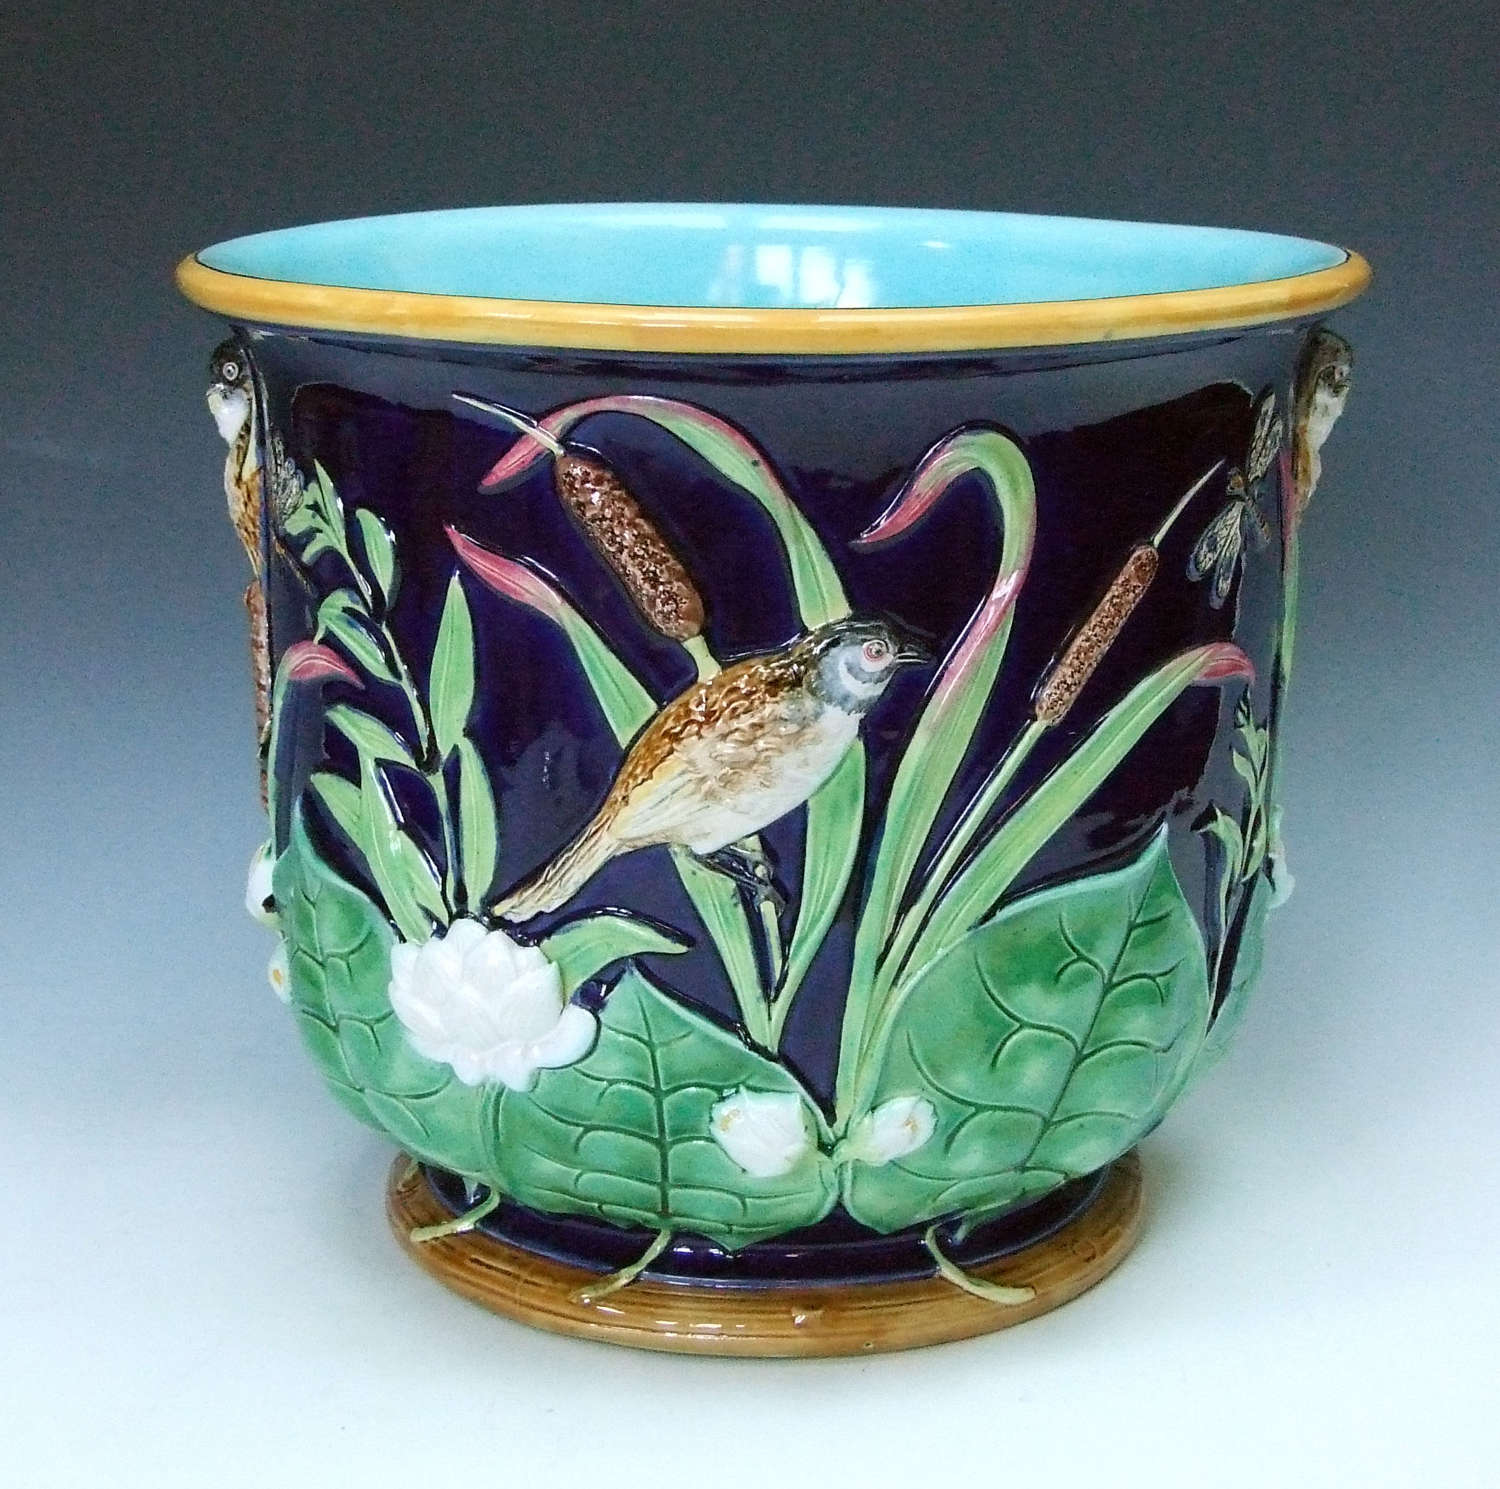 Very fine George Jones majolica cobalt ground bird & lily jardiniere